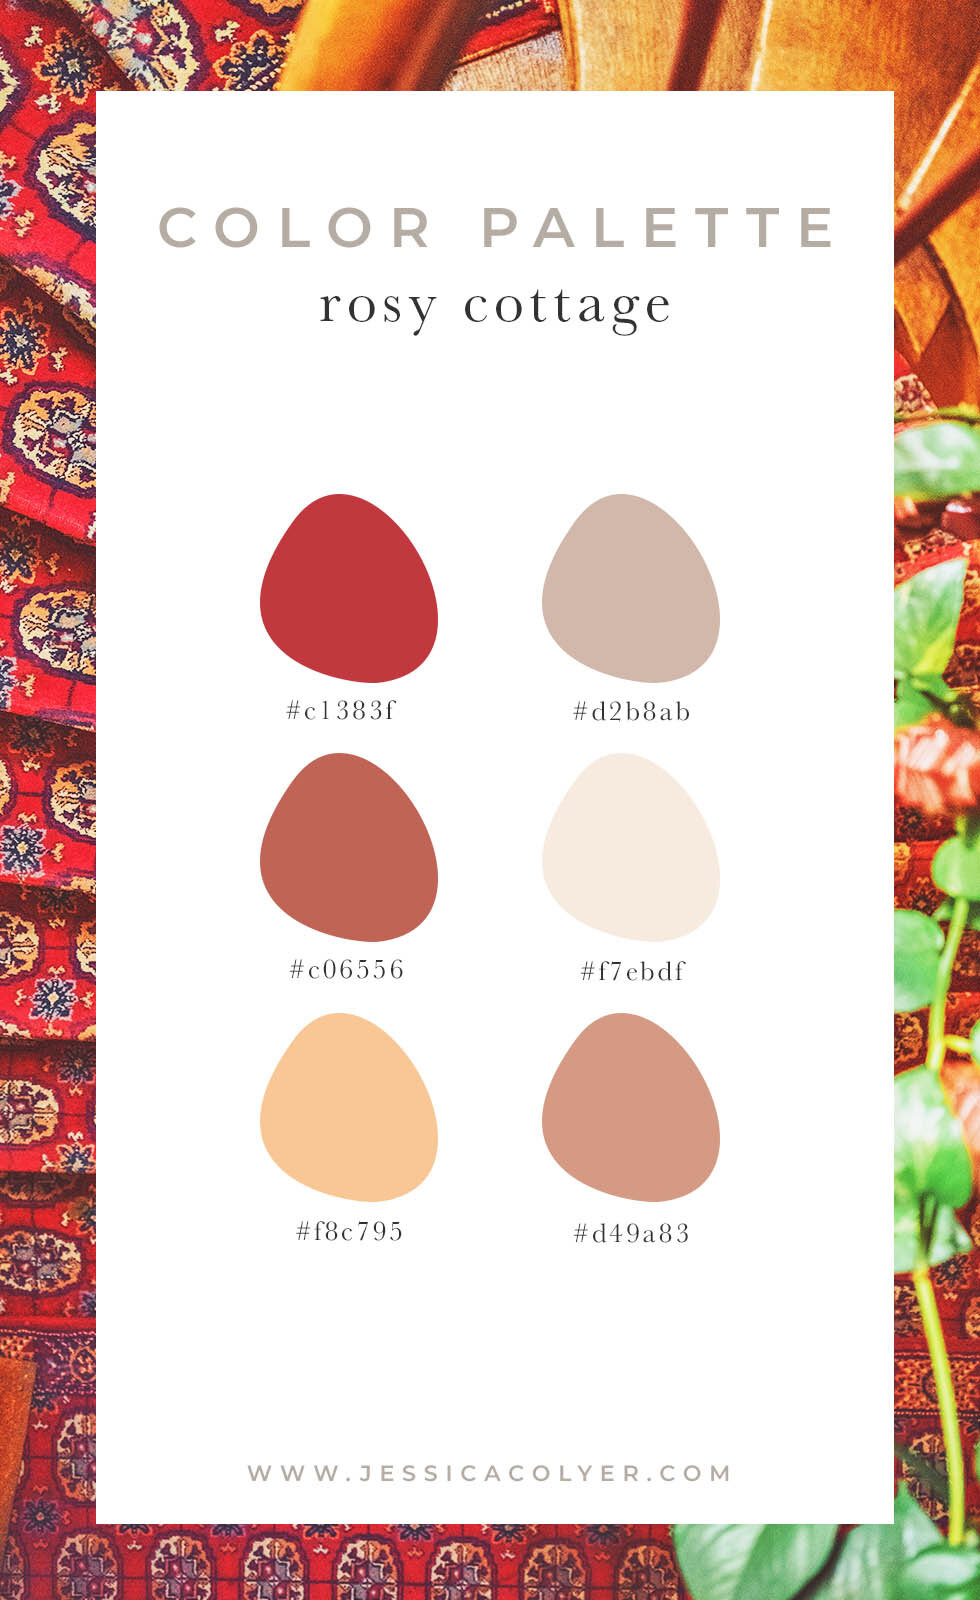 Rosy Cottage Color Palette | Jessica Colyer